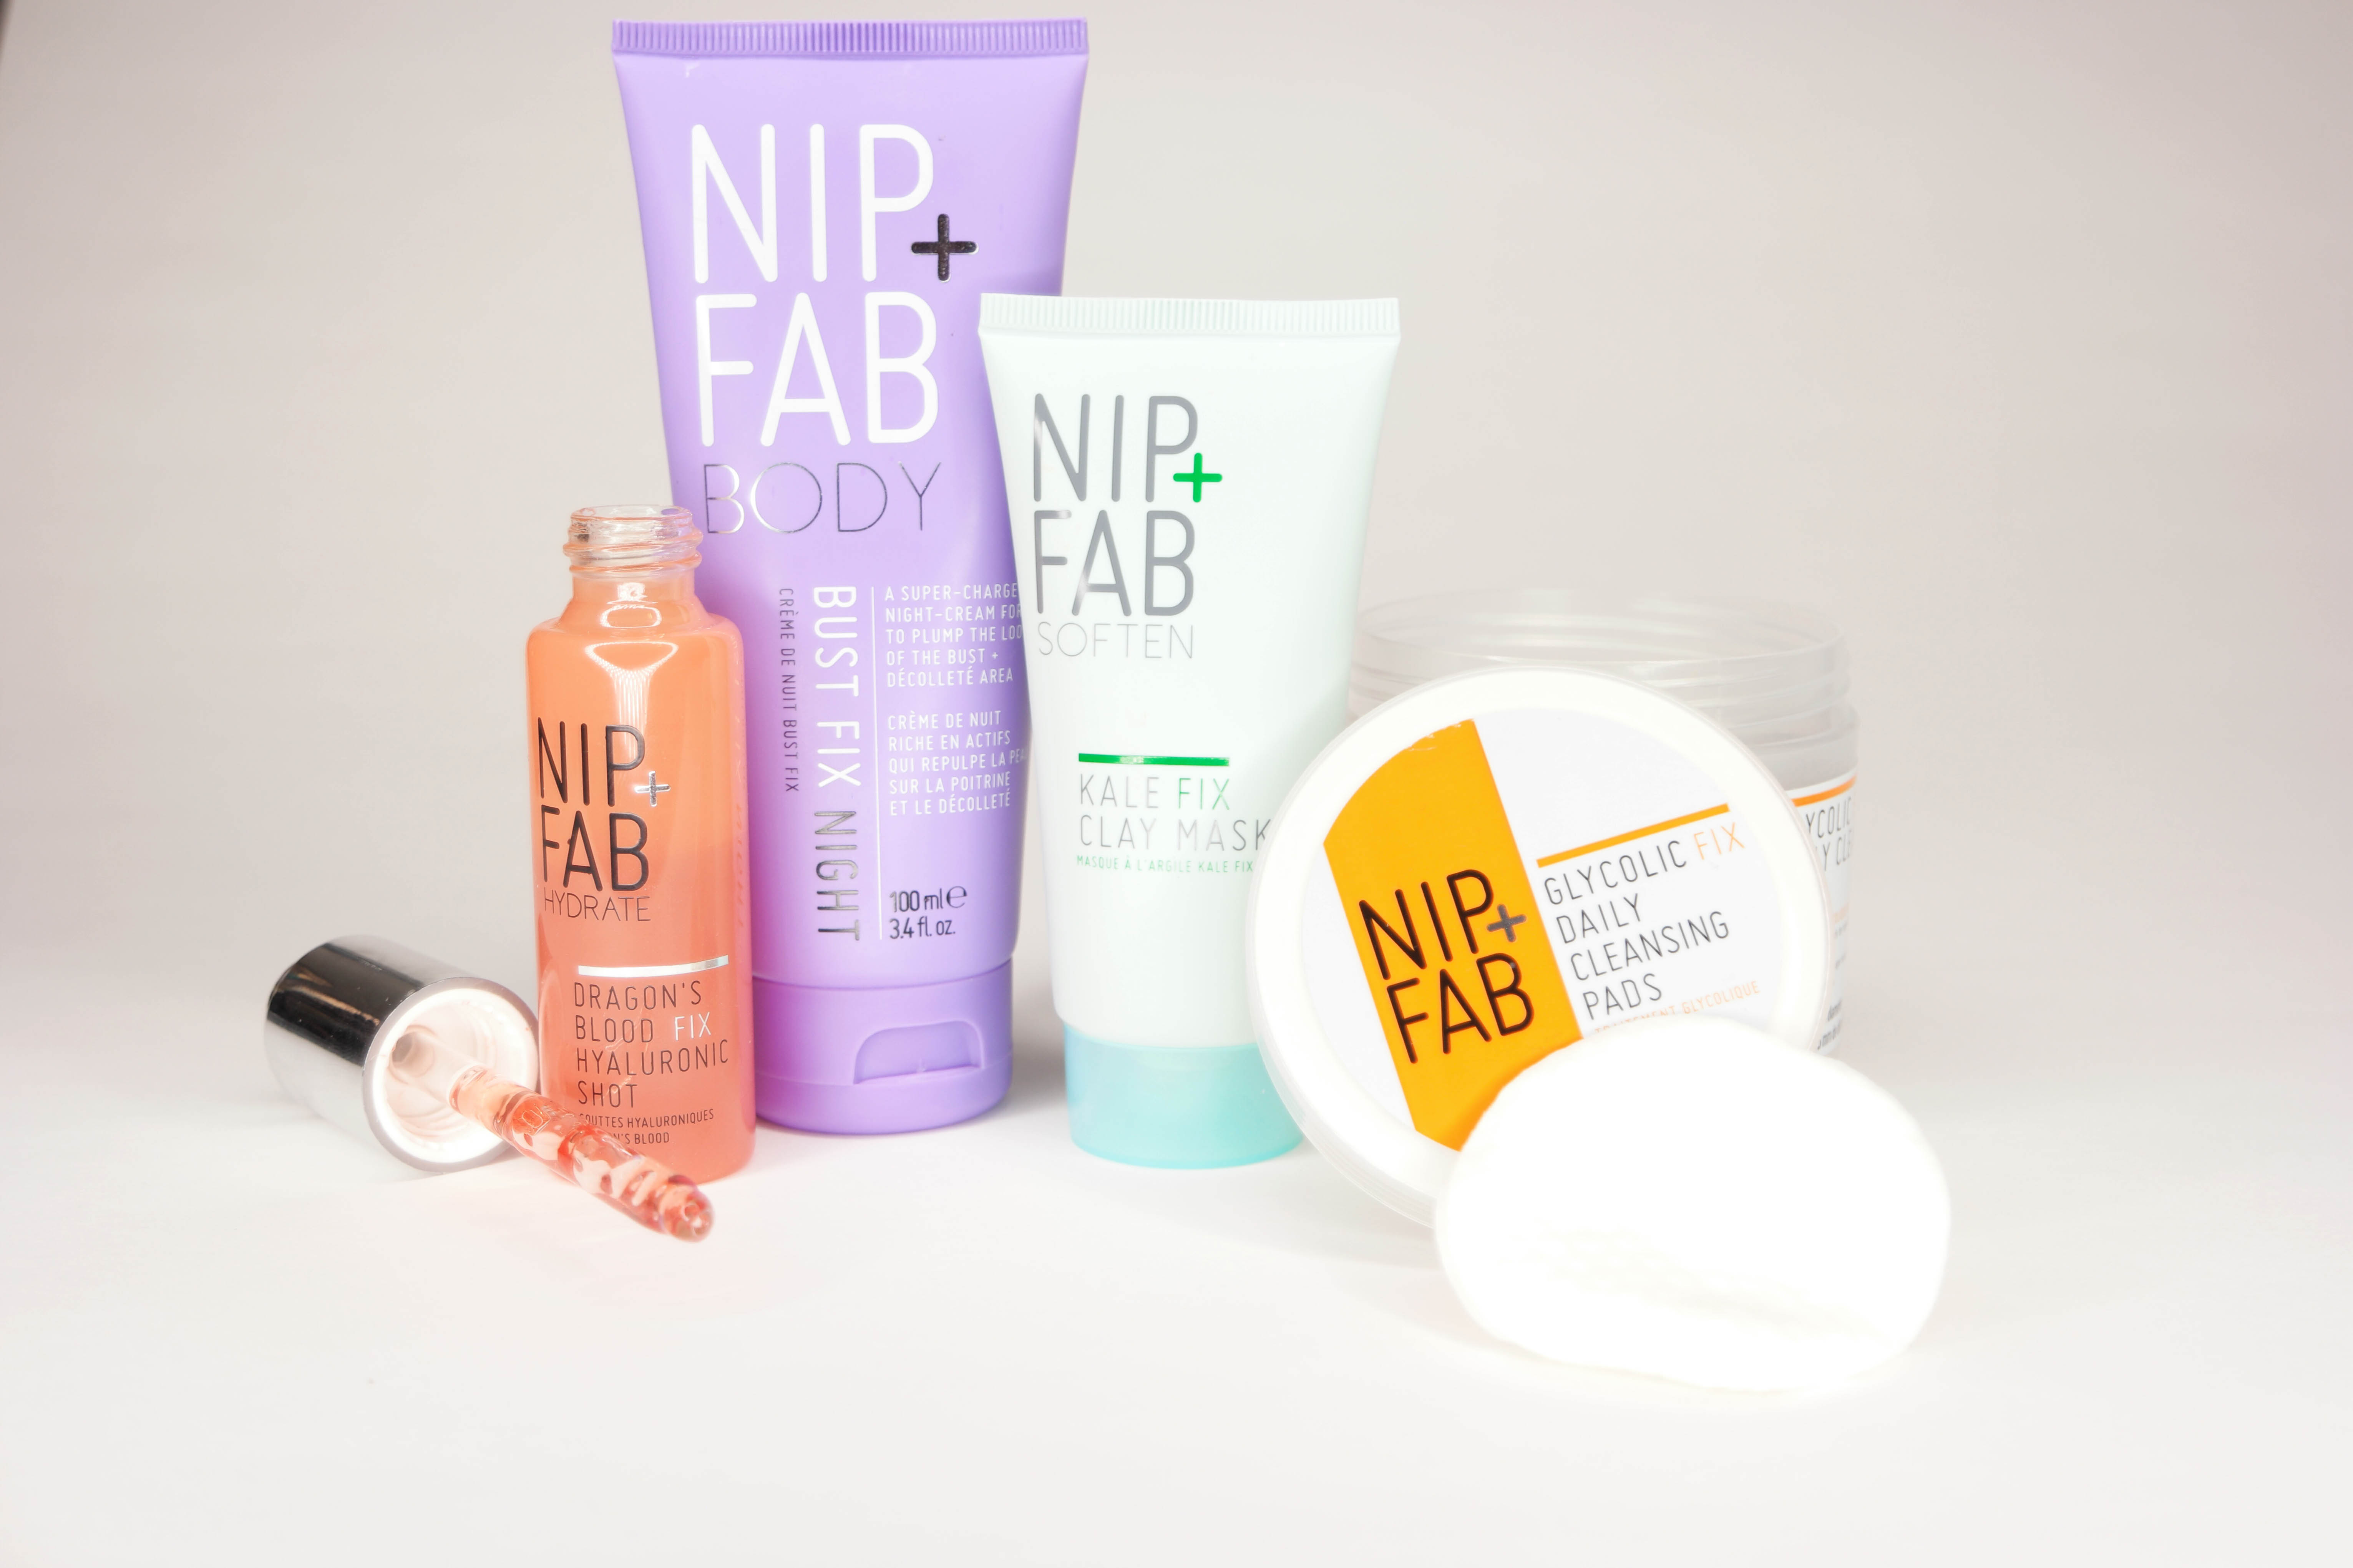 Nip + Fab: Solid Skincare Without Breaking the Bank